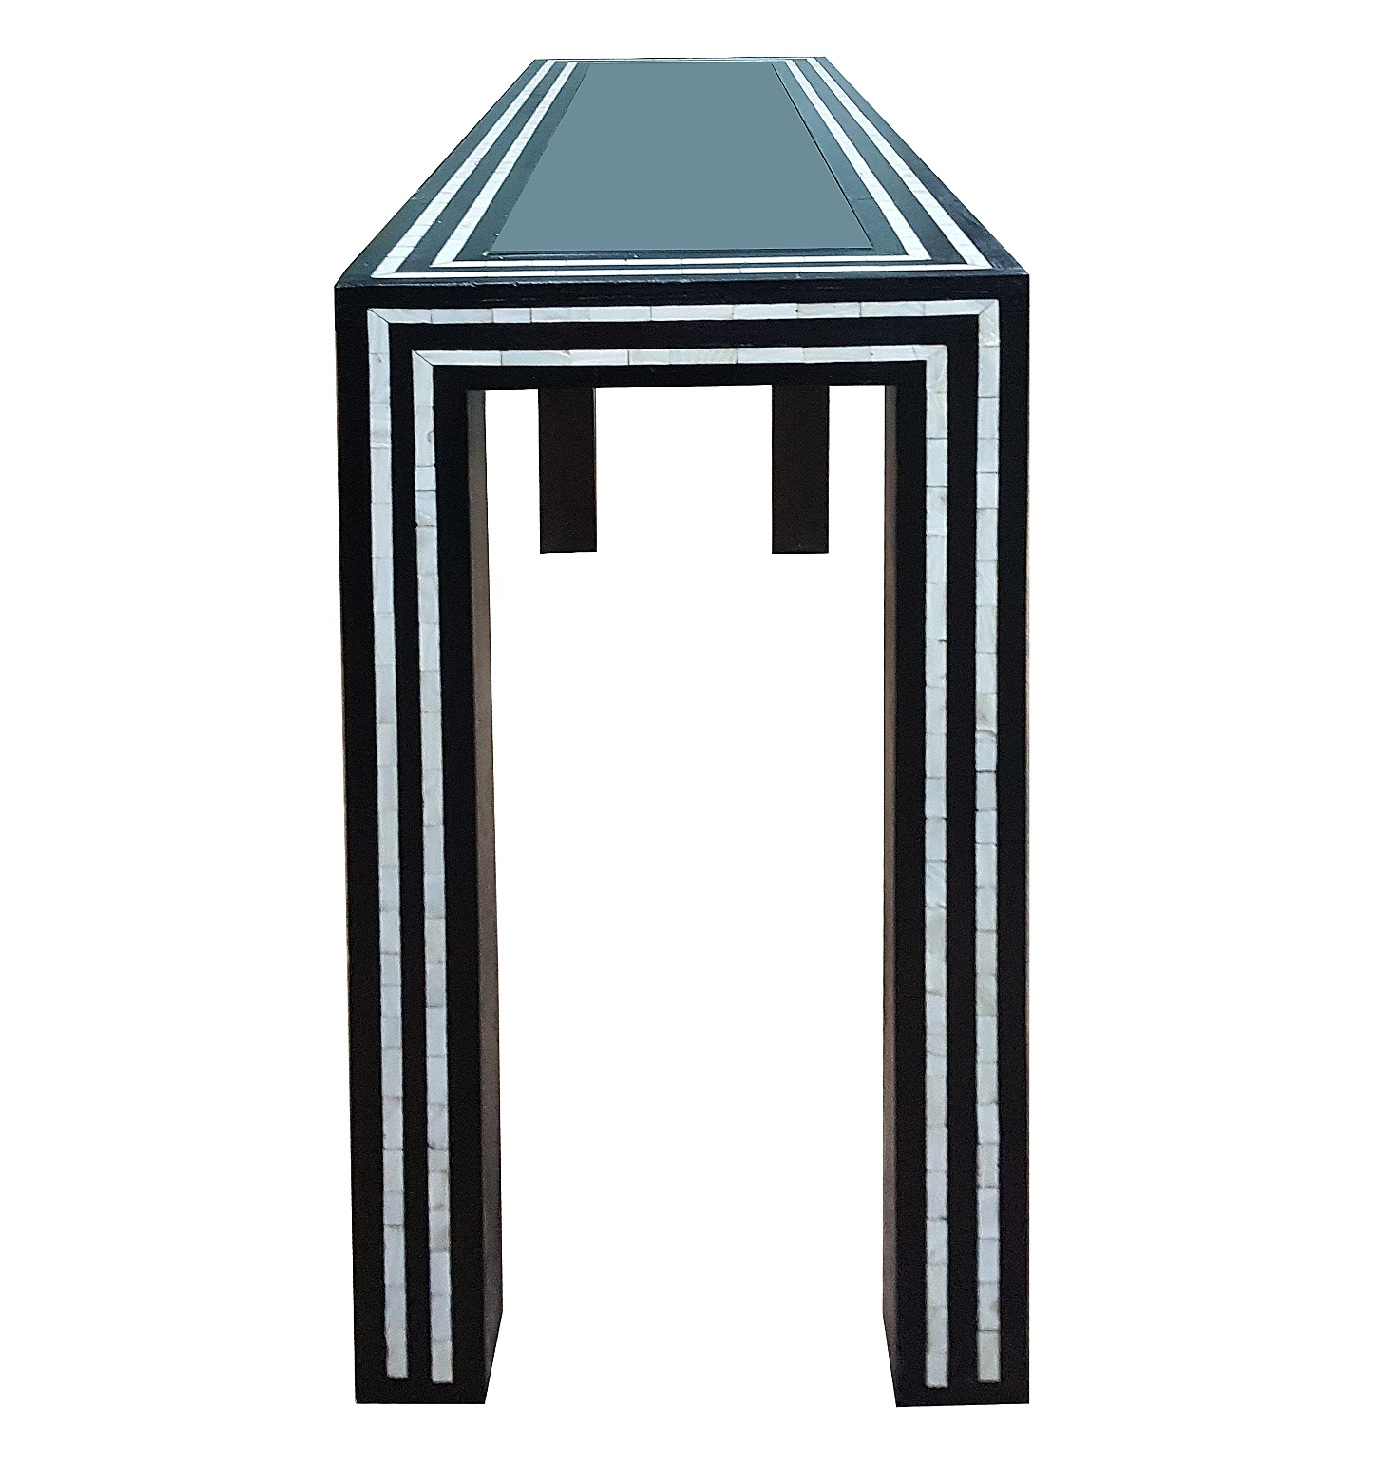 Most Popular Black And White Pearl Inlay Console: Glass And Inlay Console Table With Black And White Inlay Console Tables (View 12 of 20)